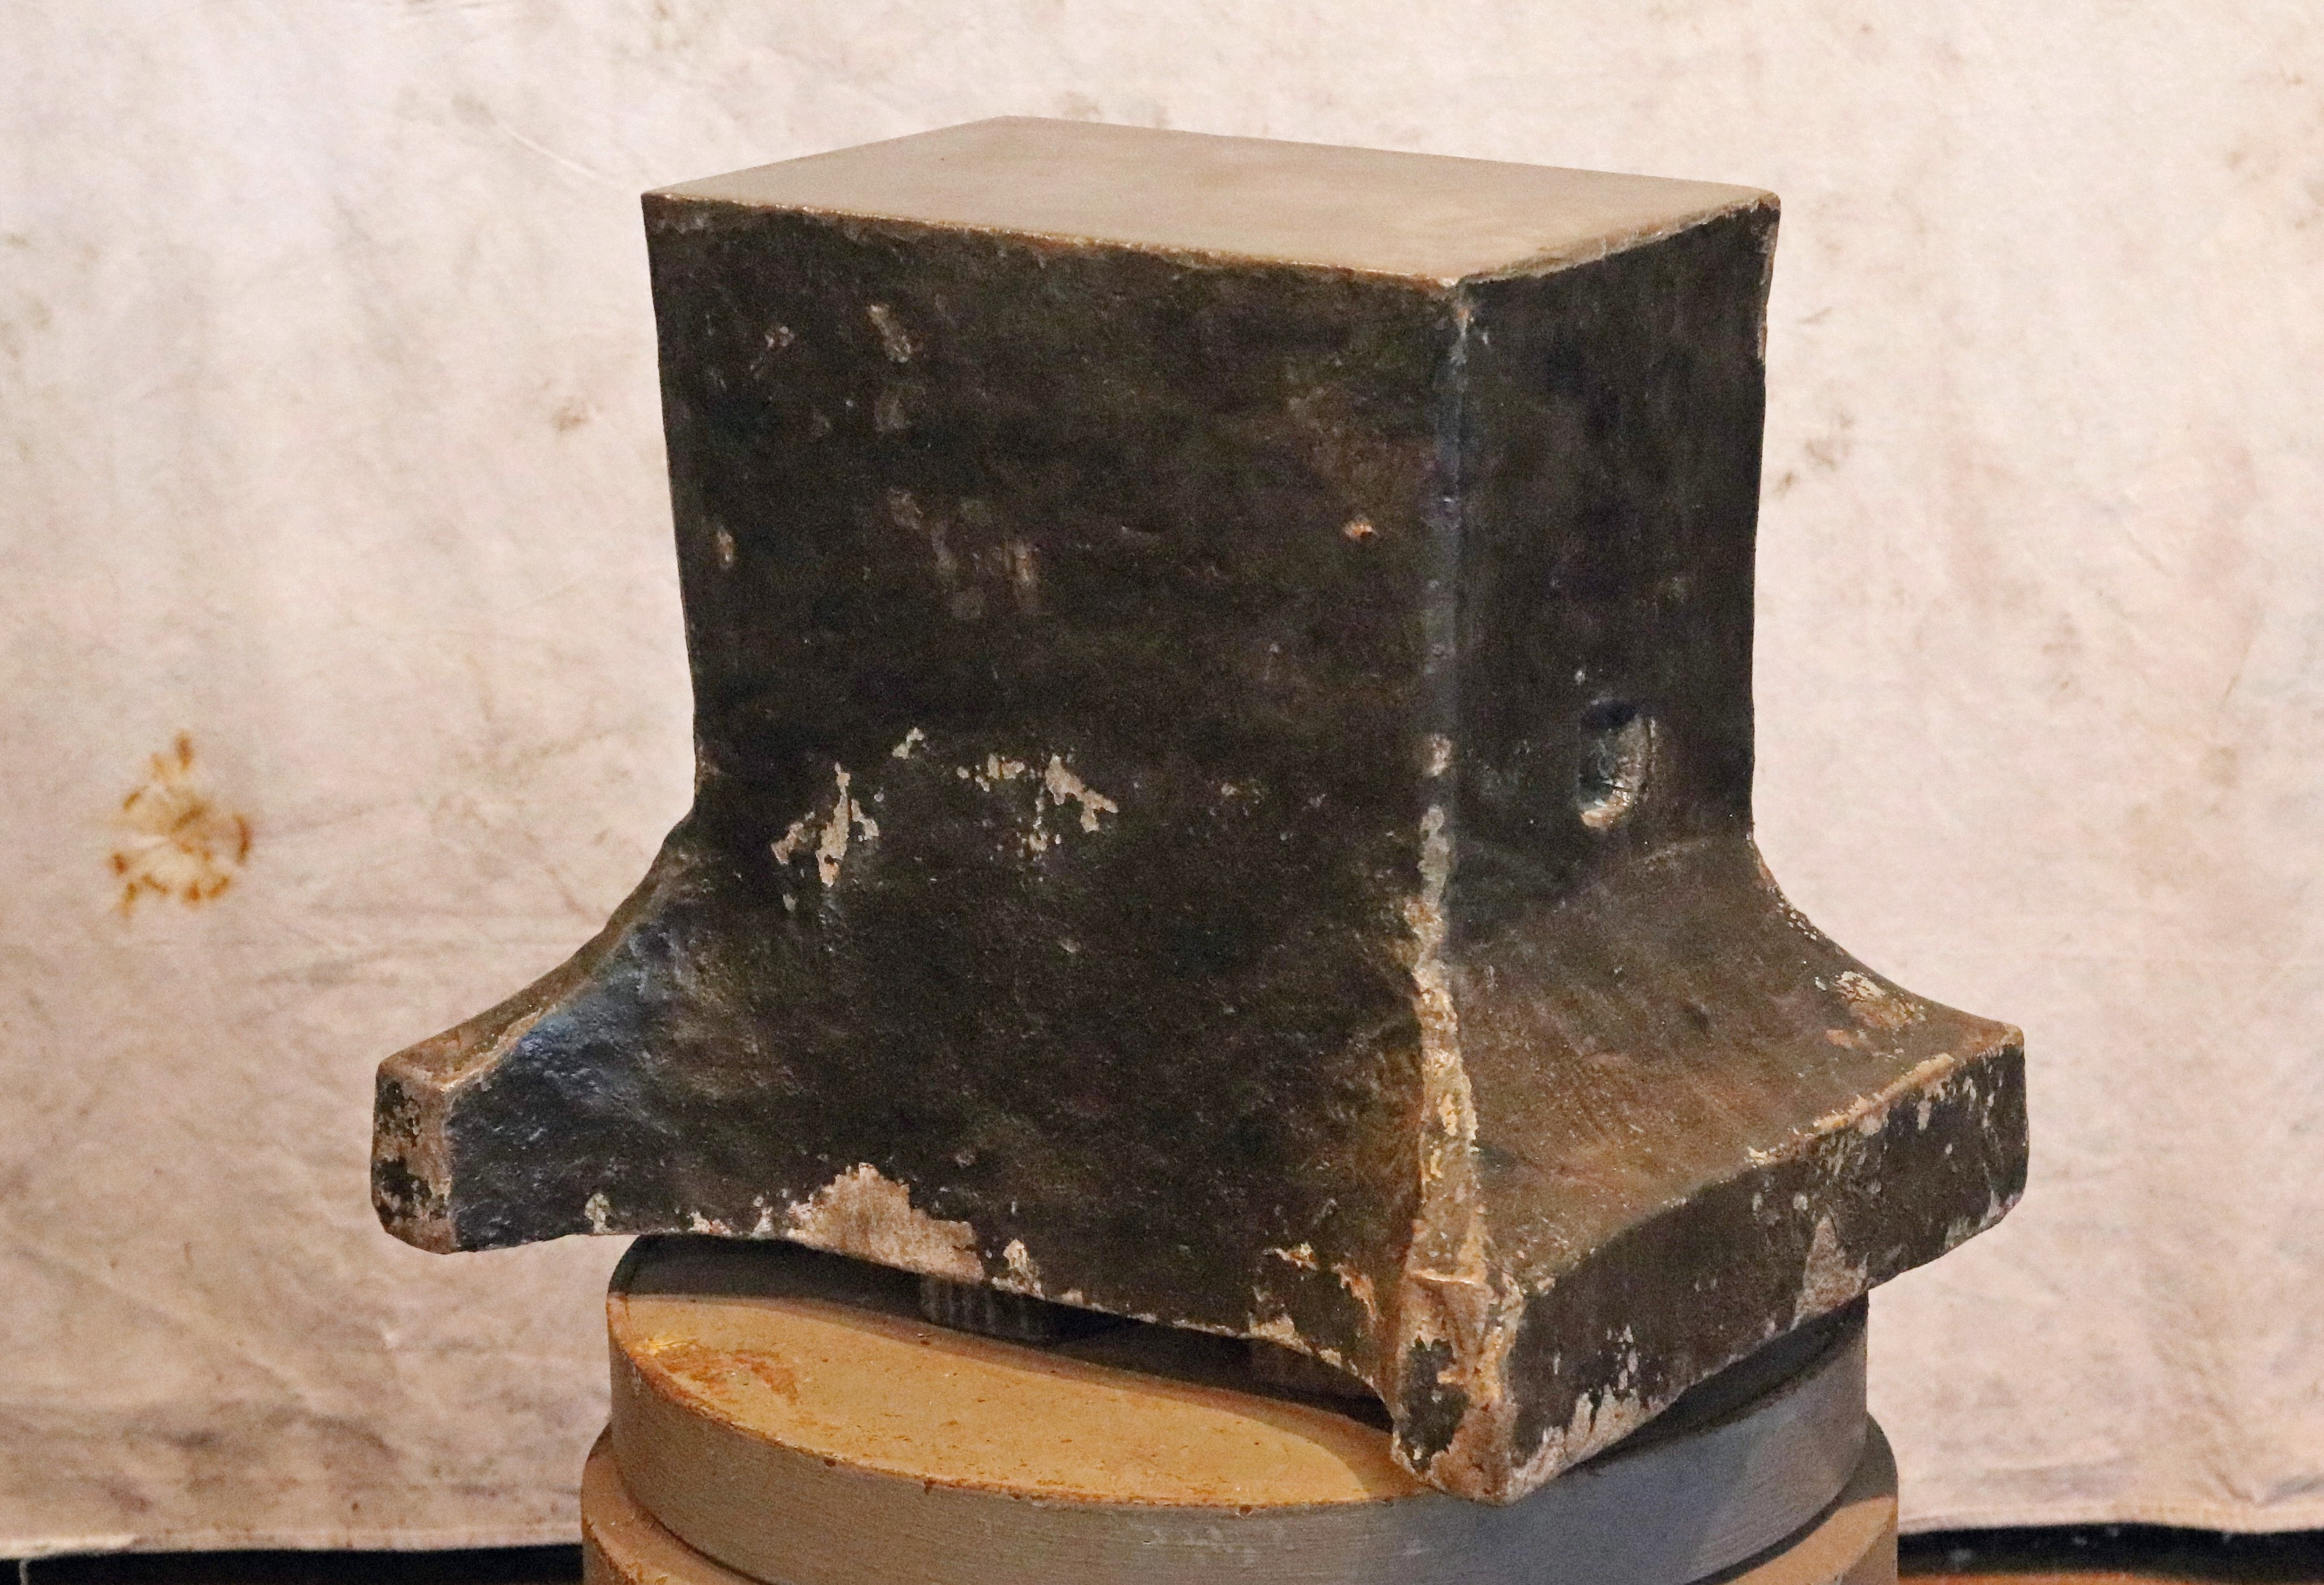 462 lb German Saw Maker's blacksmith anvil in very good condition with original crown - anvil for sale